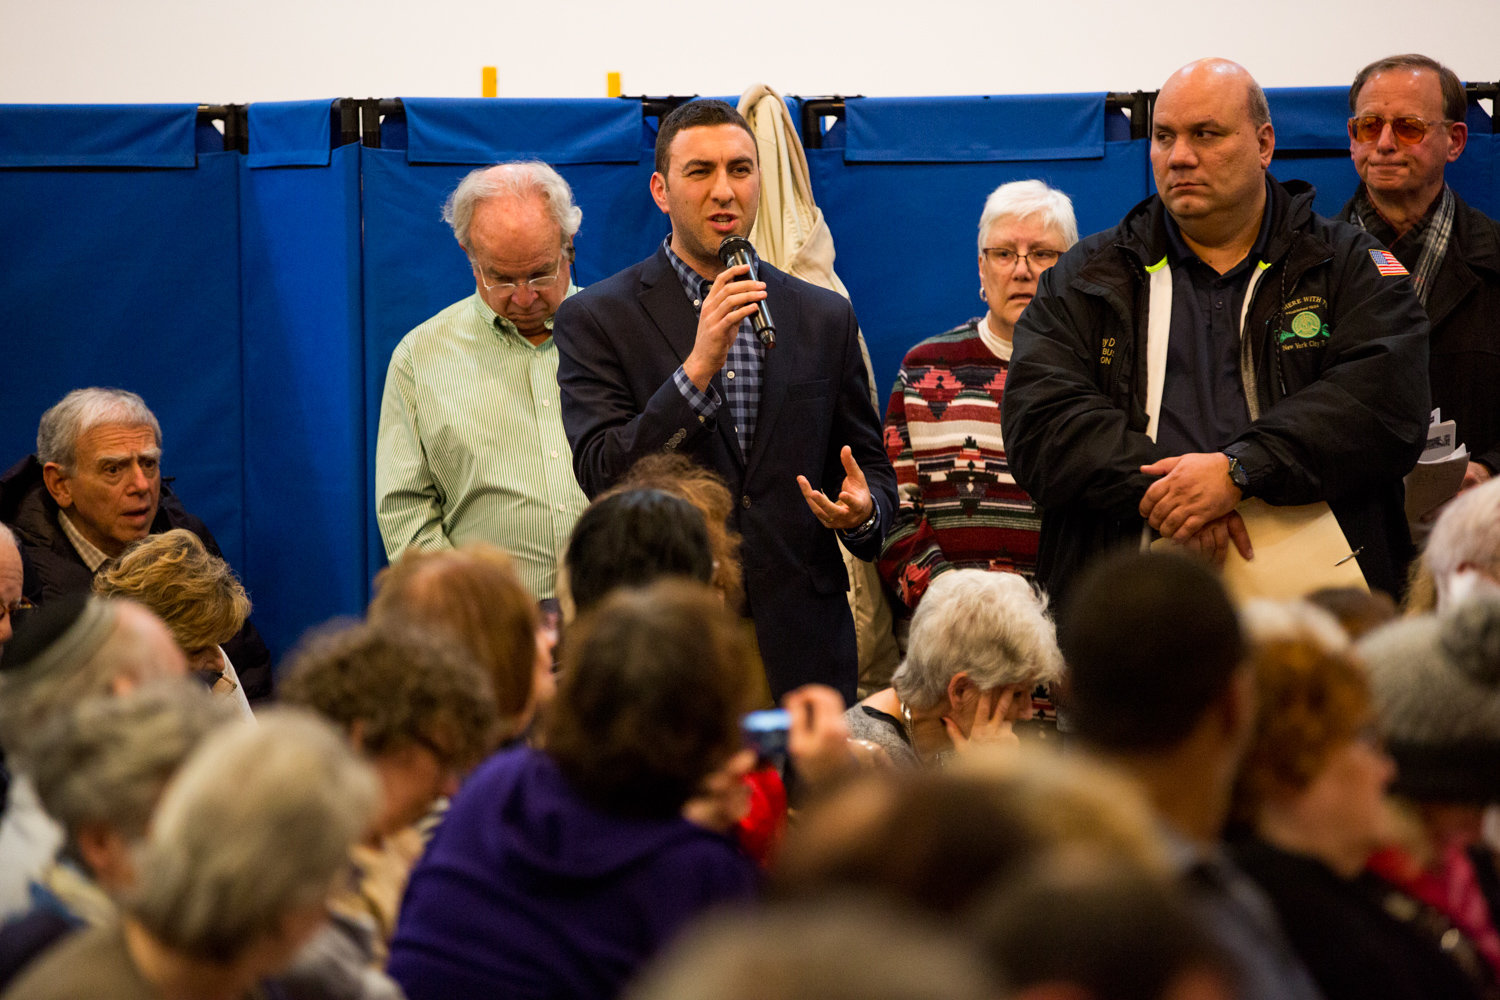 City council candidate Eric Dinowitz alleges the proposed cuts to express bus service are a form of age discrimination during a Nov. 18 community meeting with Metropolitan Transportation Authority officials organized by his father, Assemblyman Jeffrey Dinowitz.